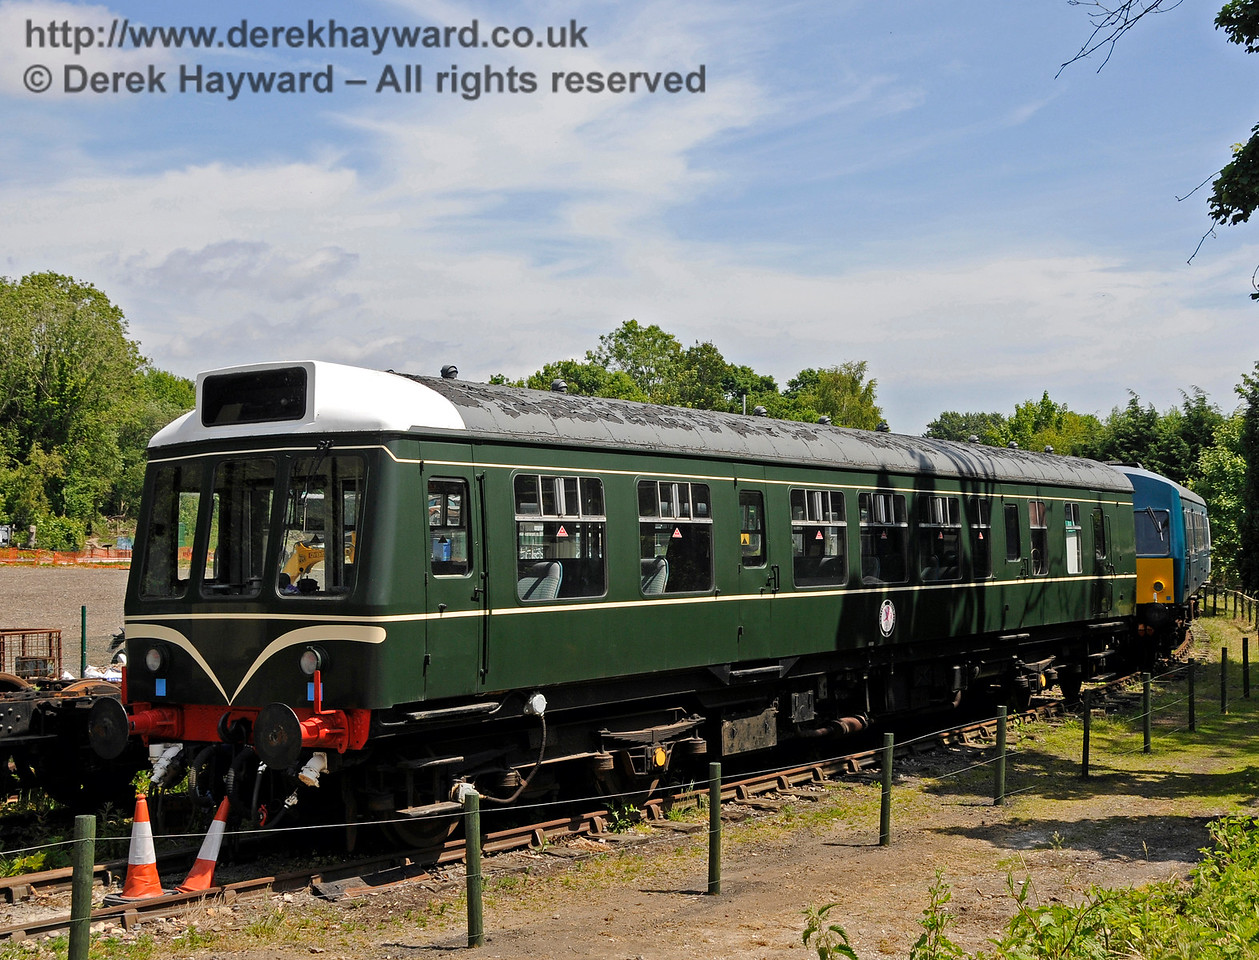 BR Class 108 DMU, coach M51922, in the sidings at Shepherdswell Station, East Kent Railway.   This unit (including coach M51562 - out of shot) belongs to the National Railway Museum at York, as an example of a coach that was never refurbished.  Before it's arrival at the EKR the unit was repainted into BR Green with Speed Whiskers.  It was loaned to the EKR in July 2014.  Shepherdswell Station, East Kent Railway.  17.06.2015  12717